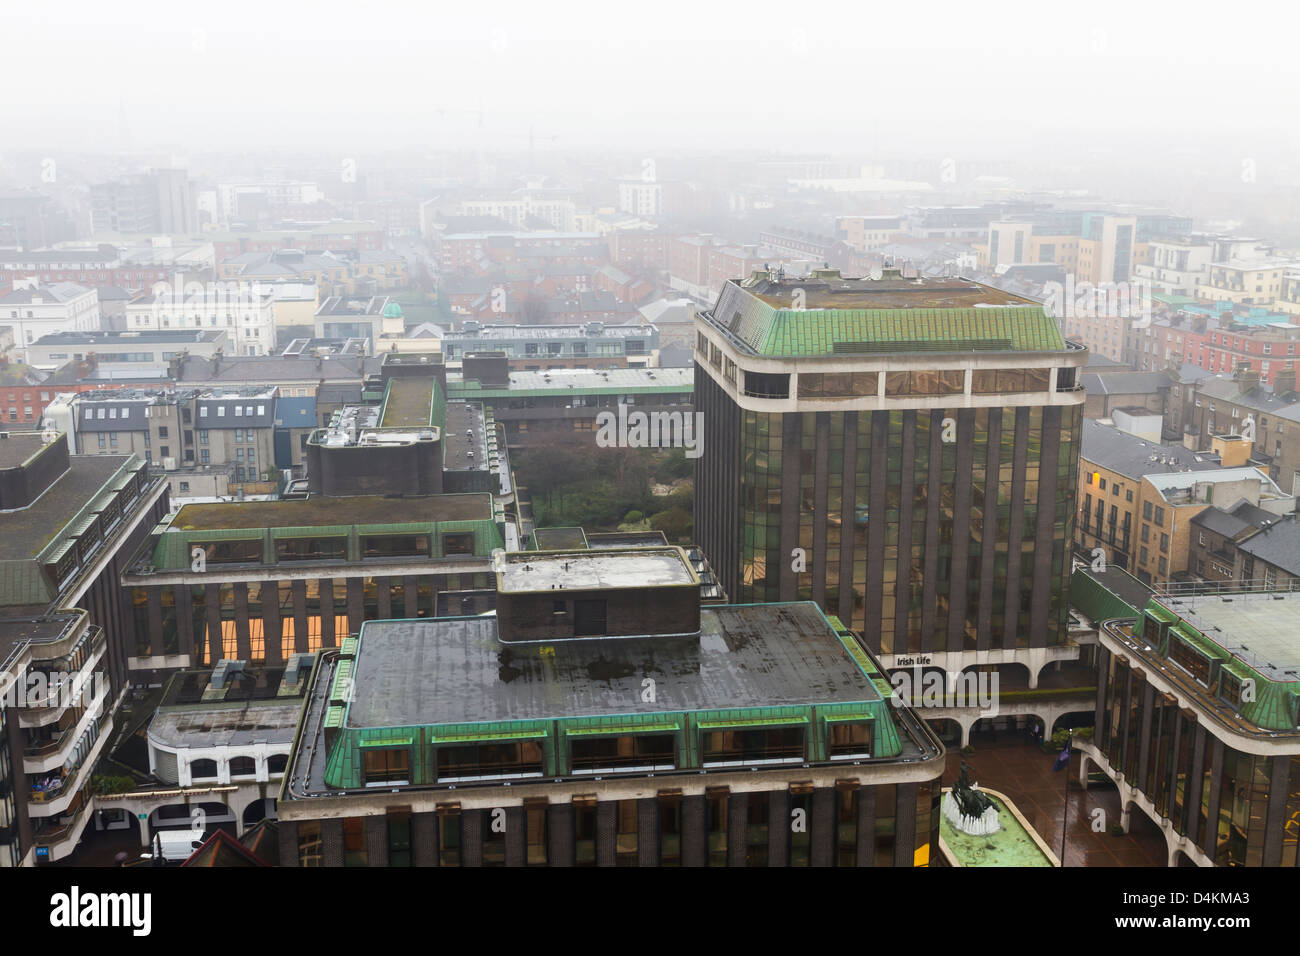 Dublin, Ireland - March 07, 2013: Aerial shot of Dublin city centre on a typical fogy day. Stock Photo